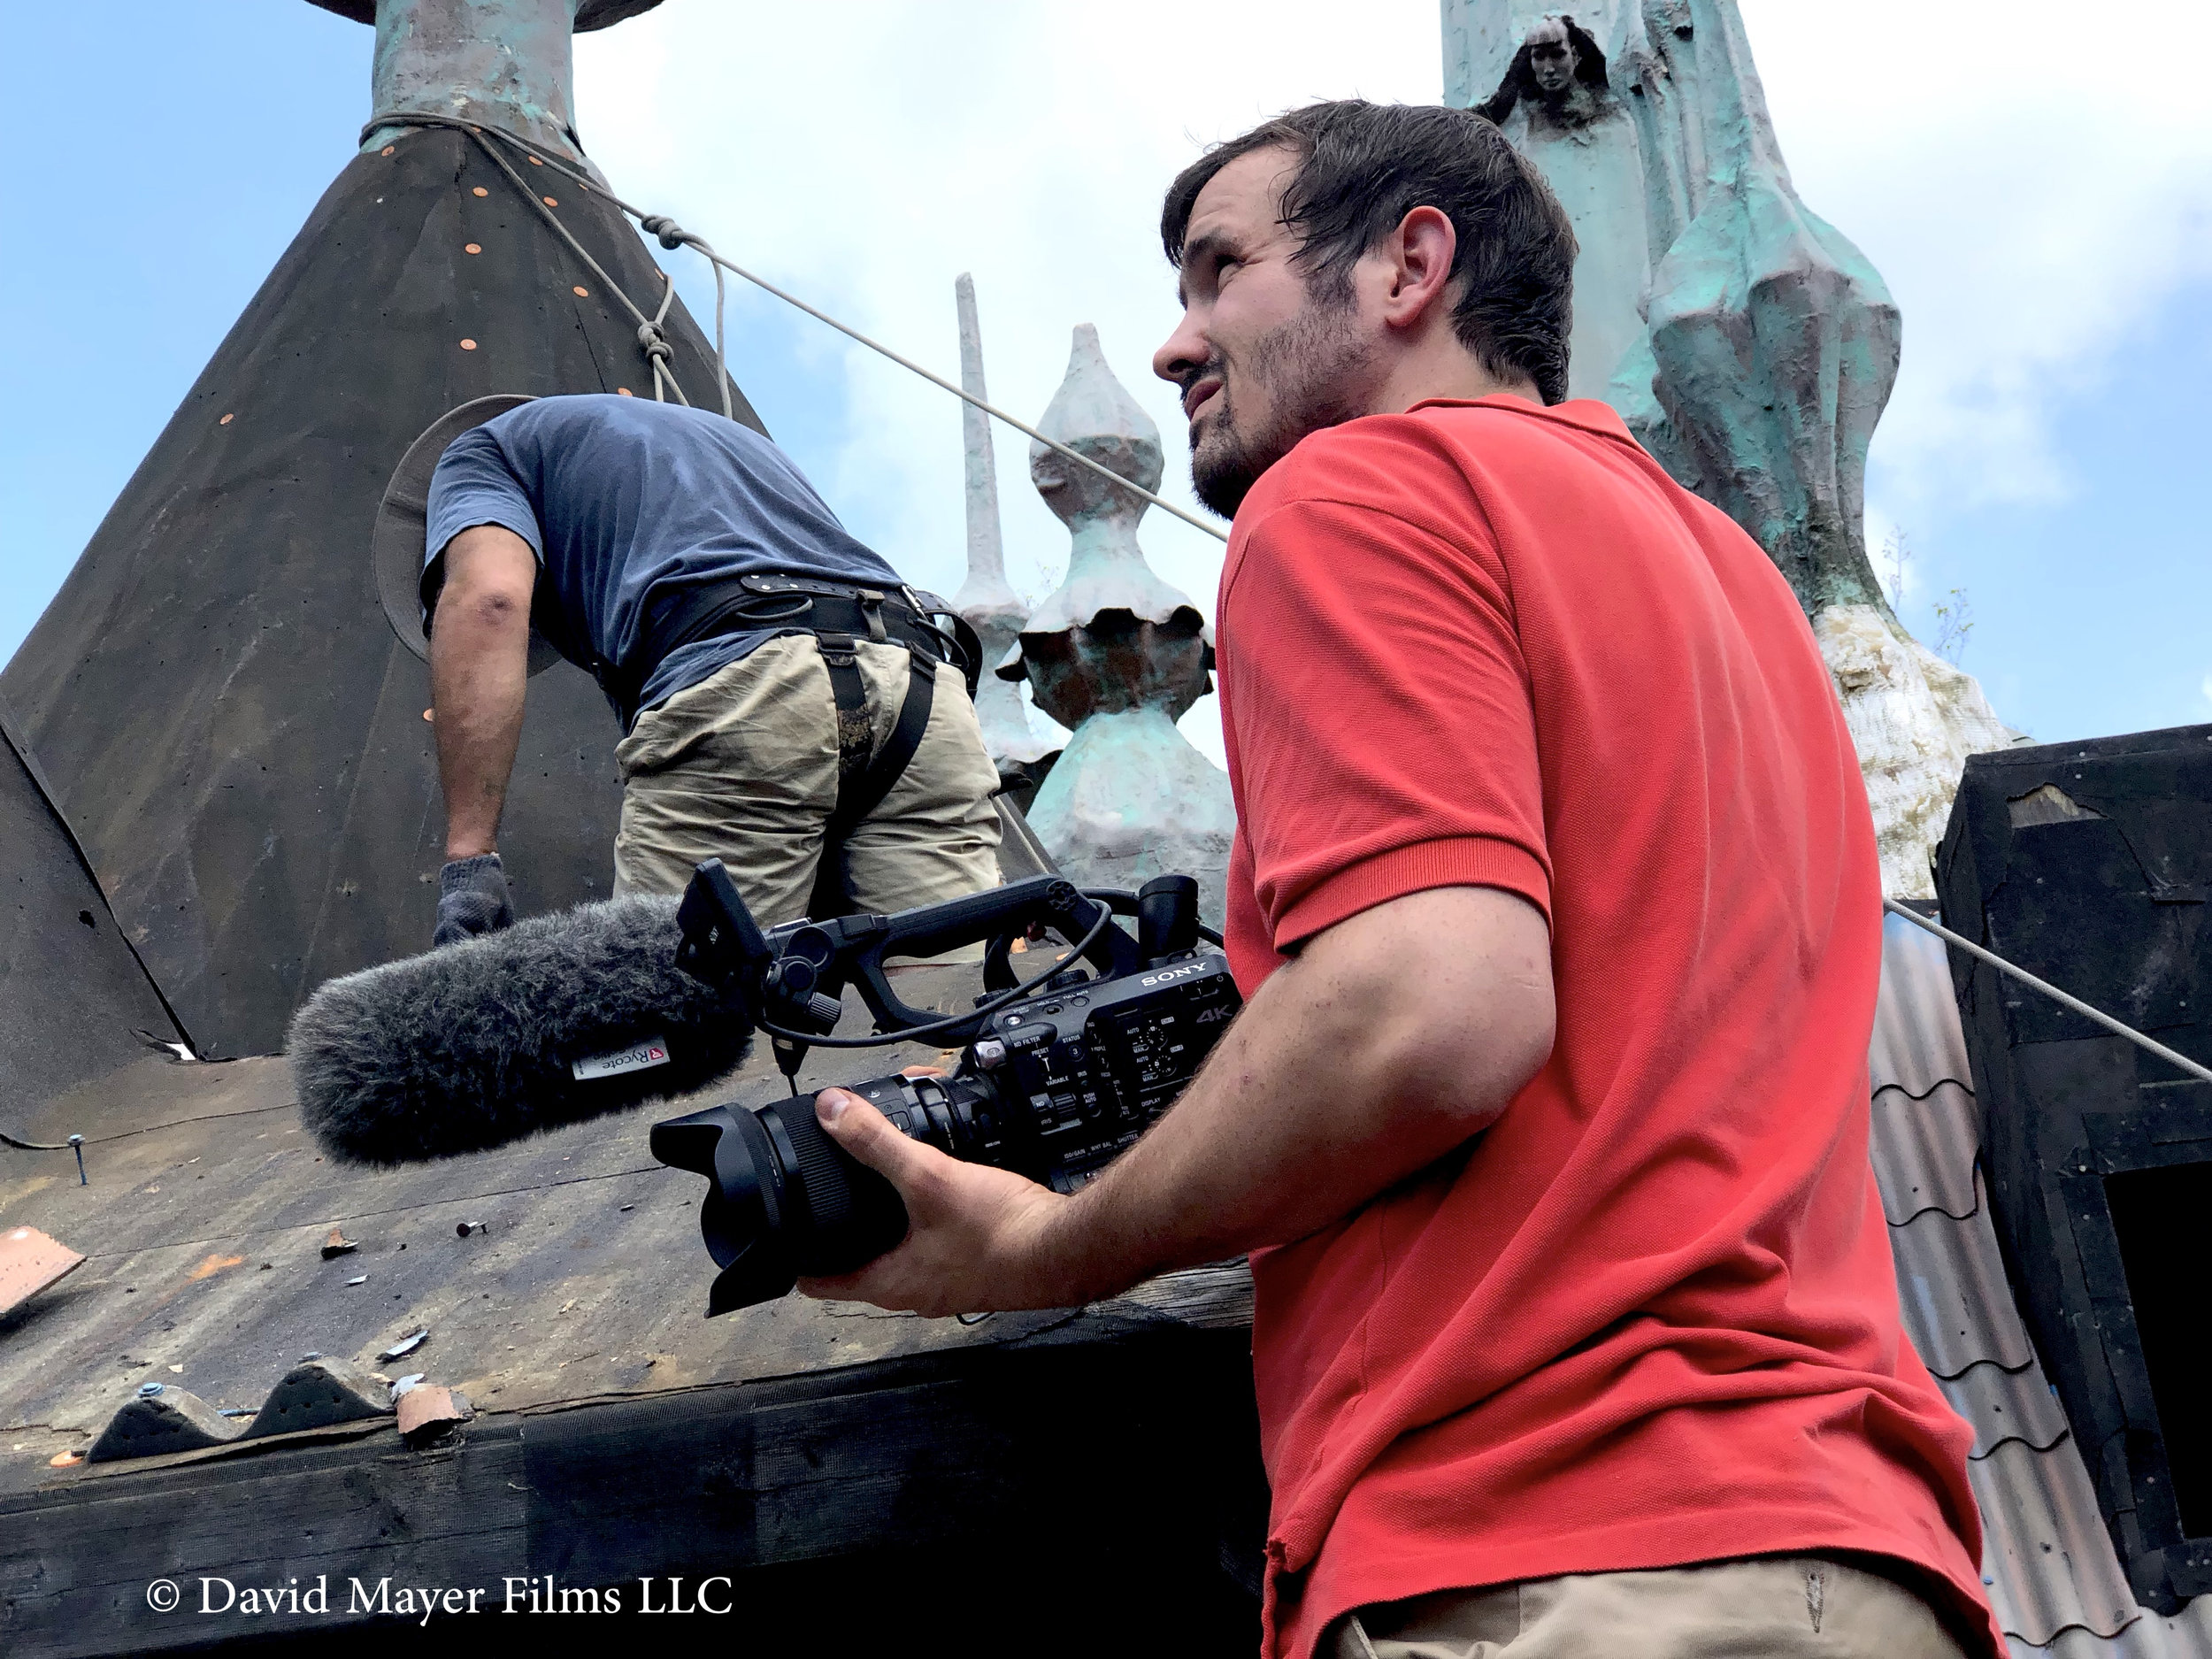 A photo of David Delaney Mayer during production of  The Castle on Red Mountain.   (CRM 2020), SONY 4K, work-in-progress Directed by: David Delaney Mayer Director of Photography: Matt Brondoli Editing: David Delaney Mayer Sound: Matt Brondoli, Jared Neal, Taylor Peterson